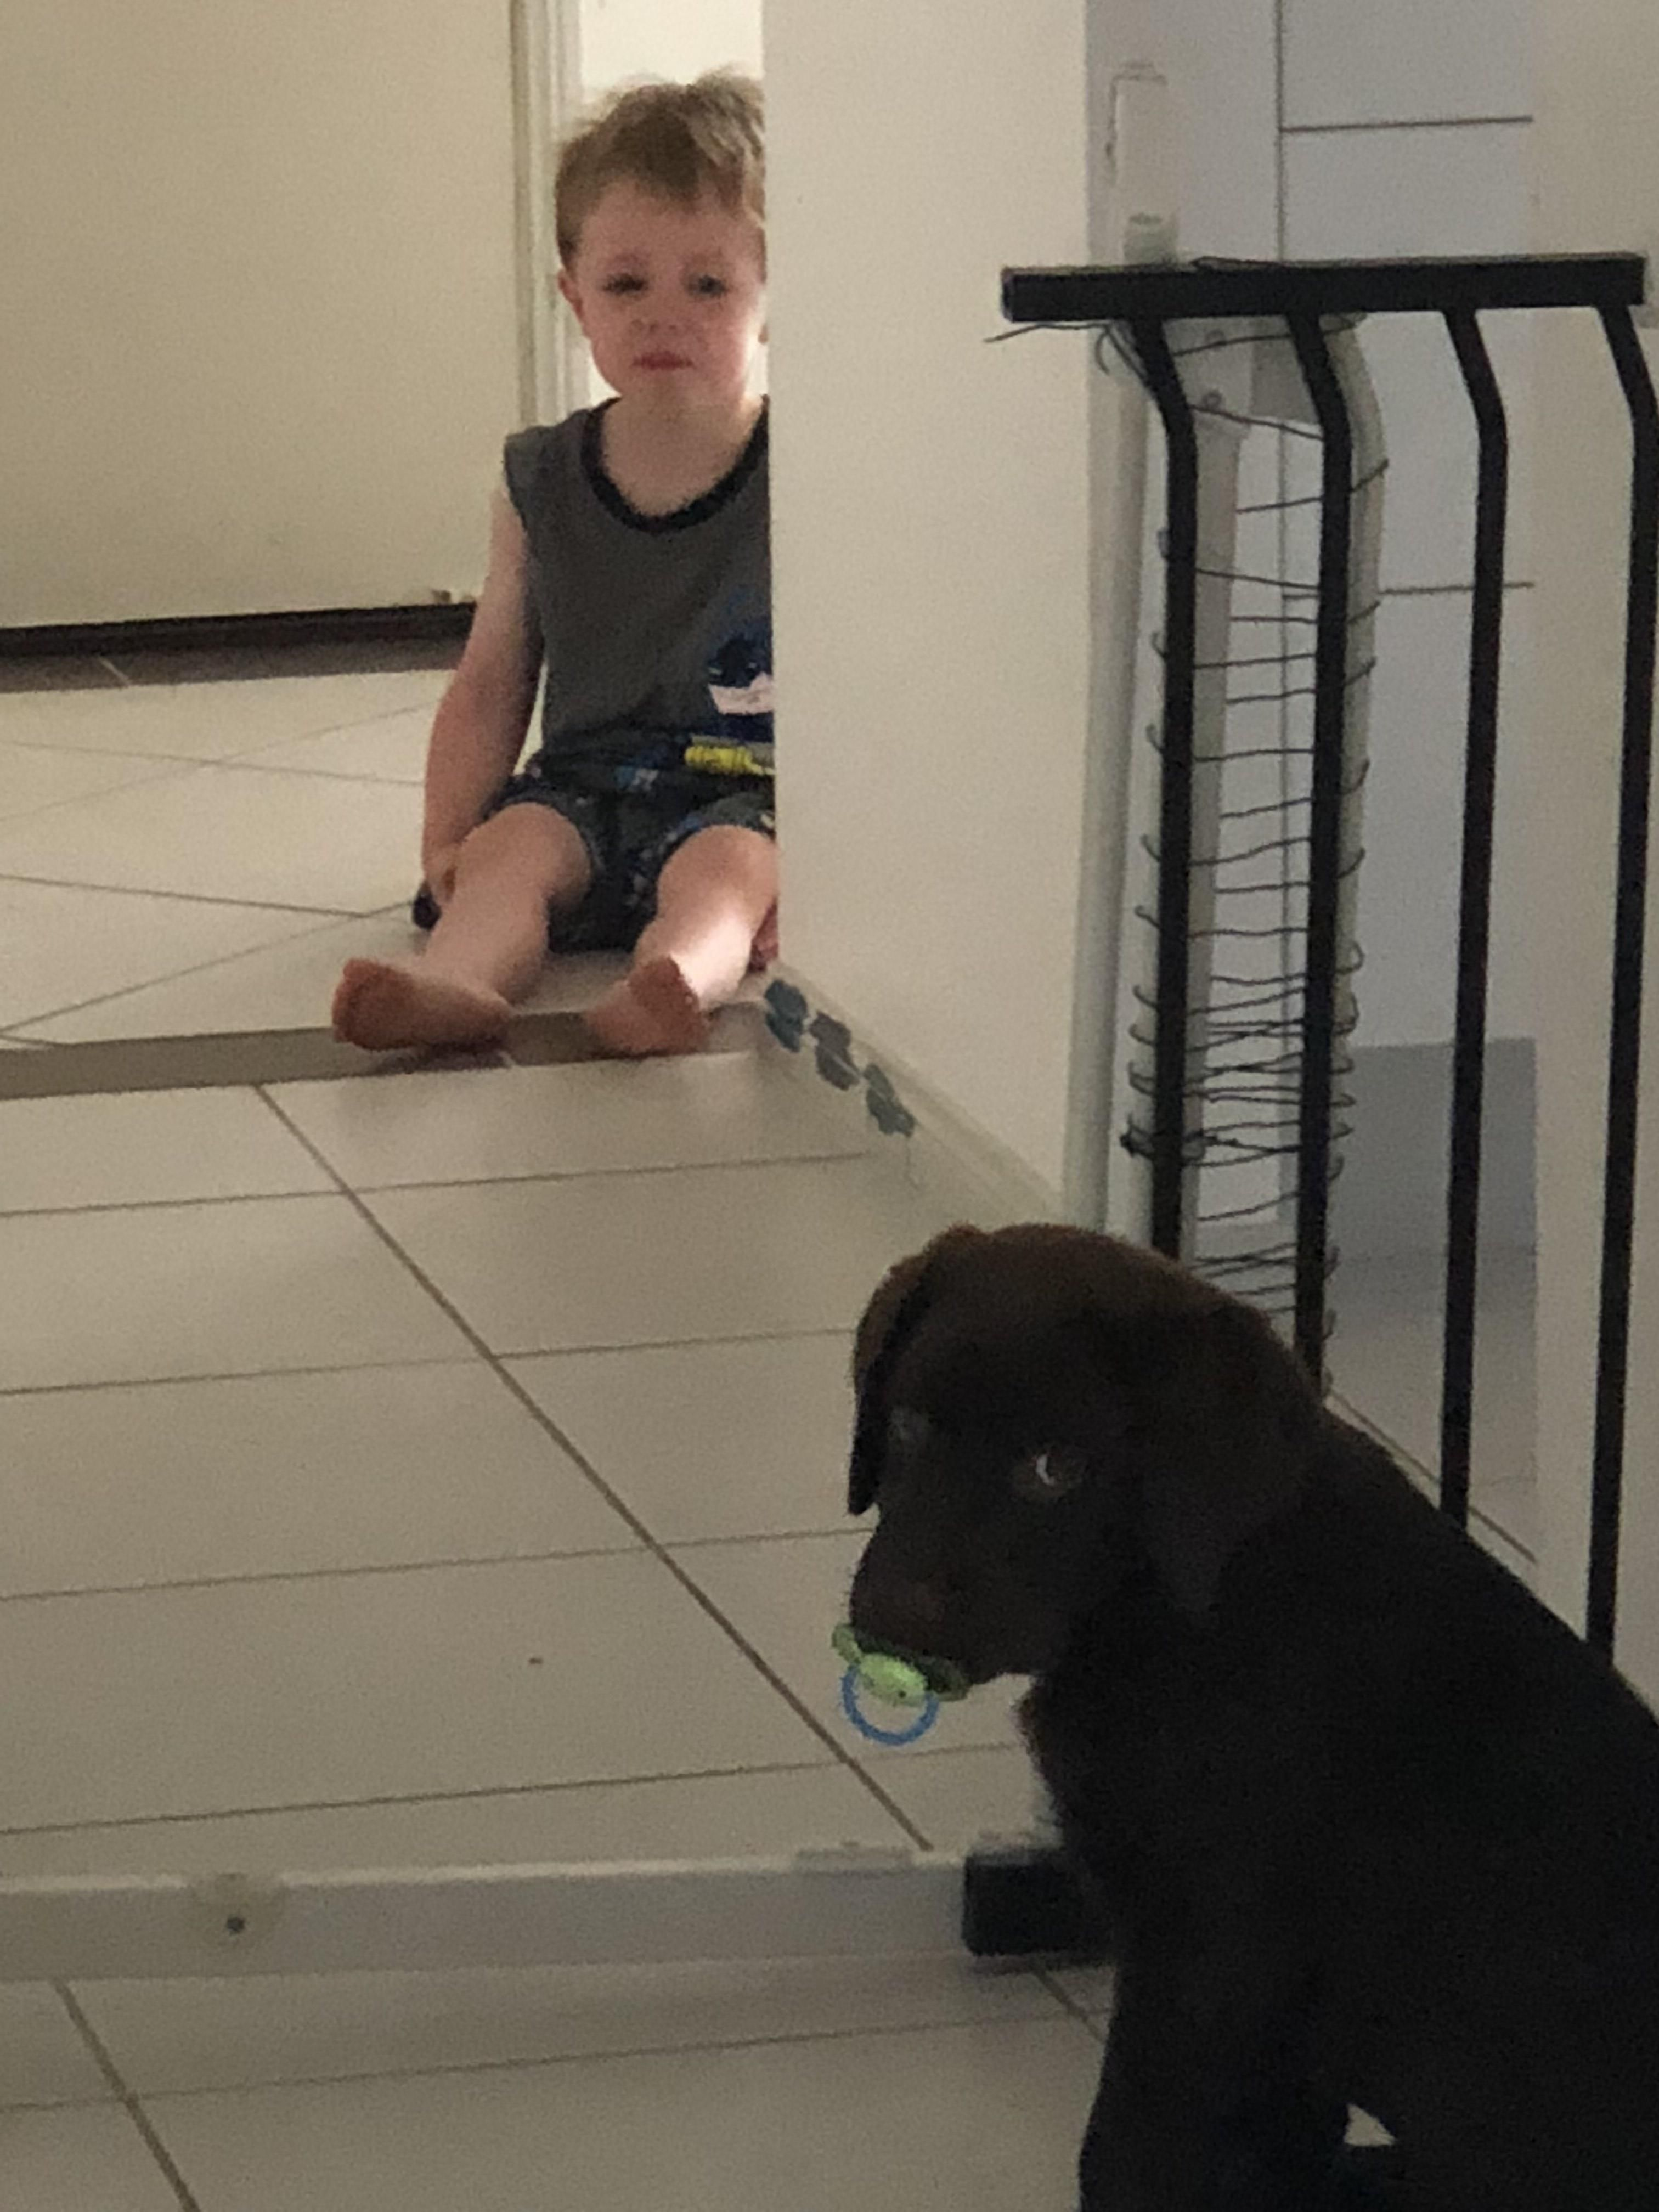 My son is still getting used to the new puppy